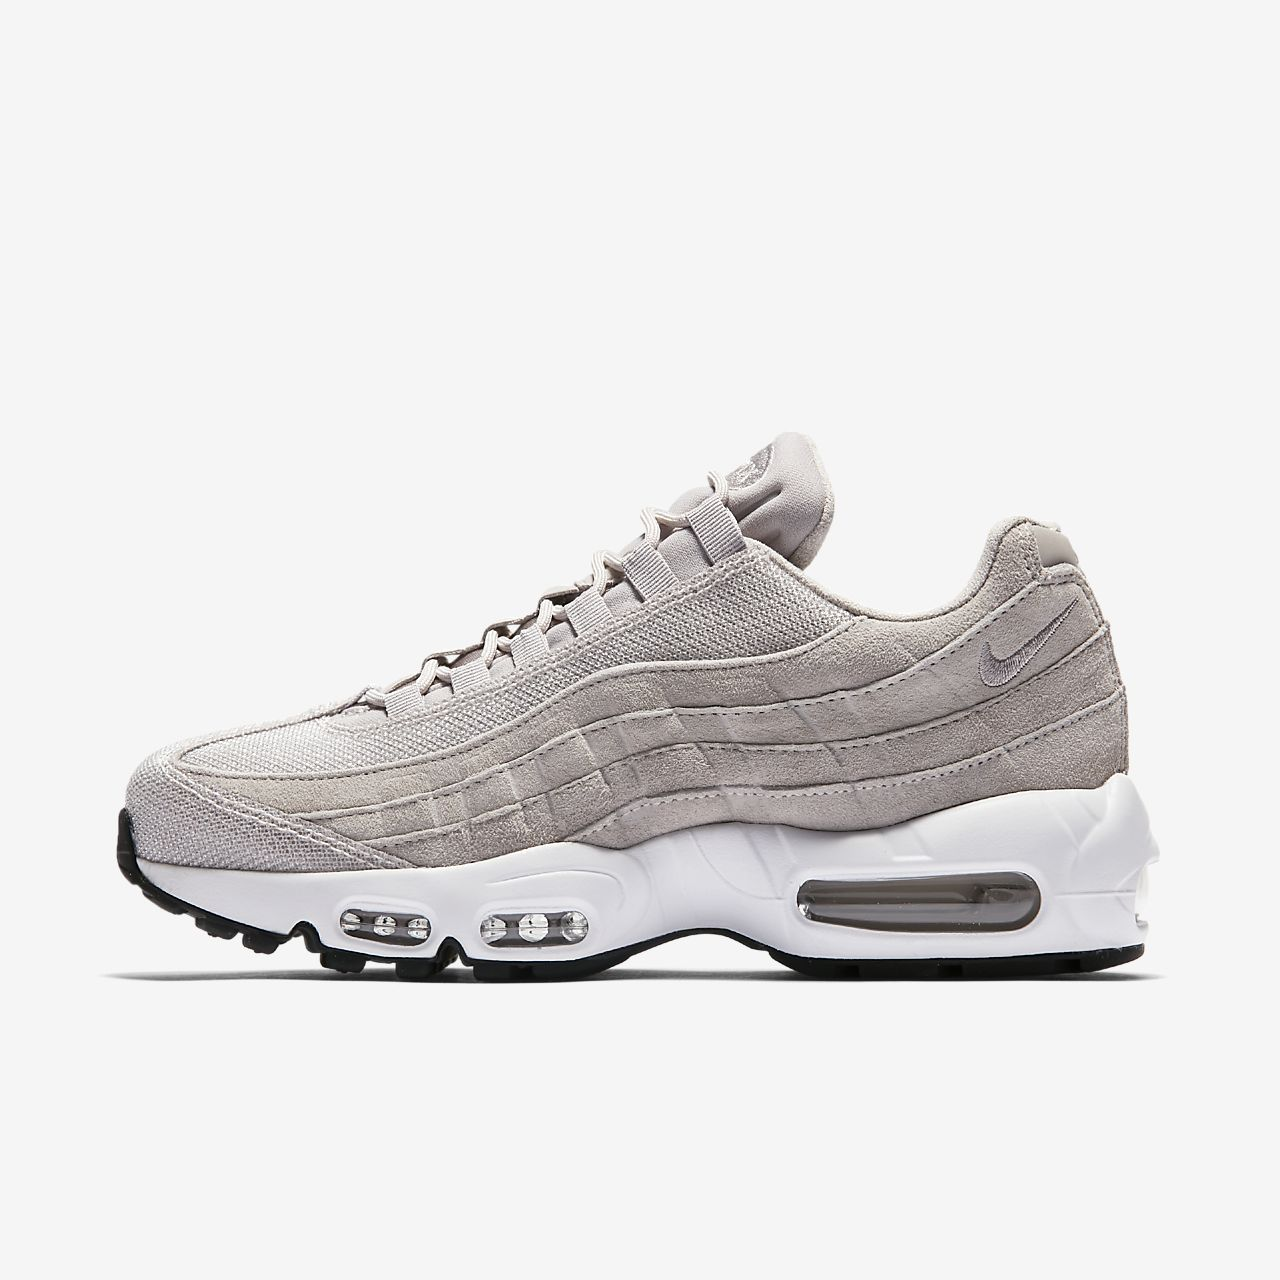 ... Nike Air Max 95 Premium Women's Shoe